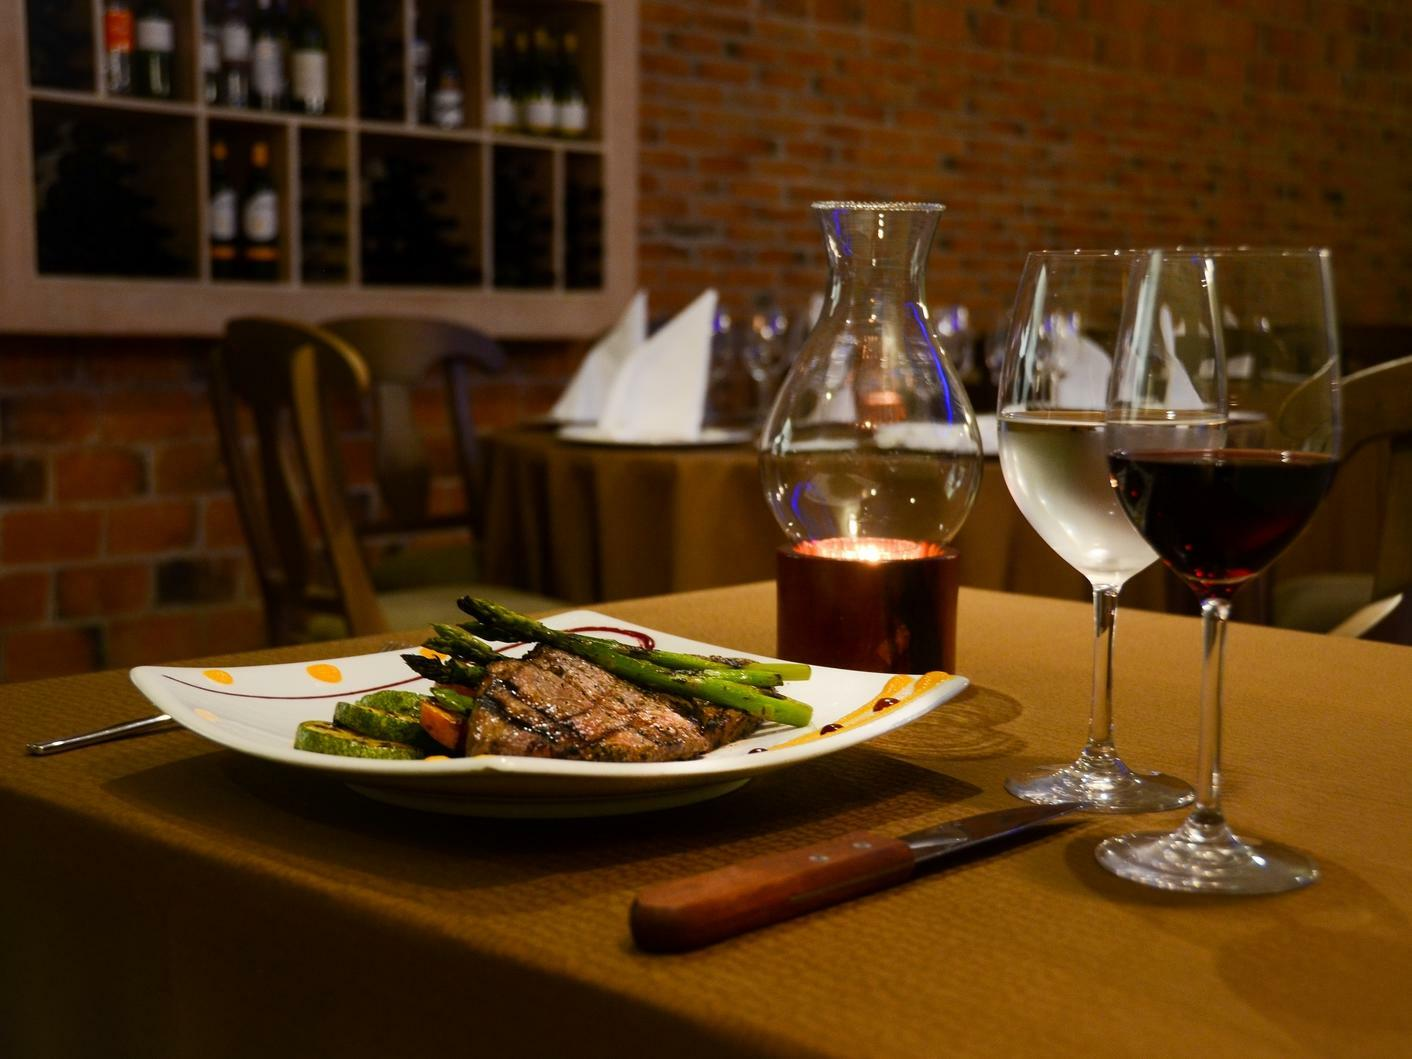 steak and vegetables on a plate next to wine glasses